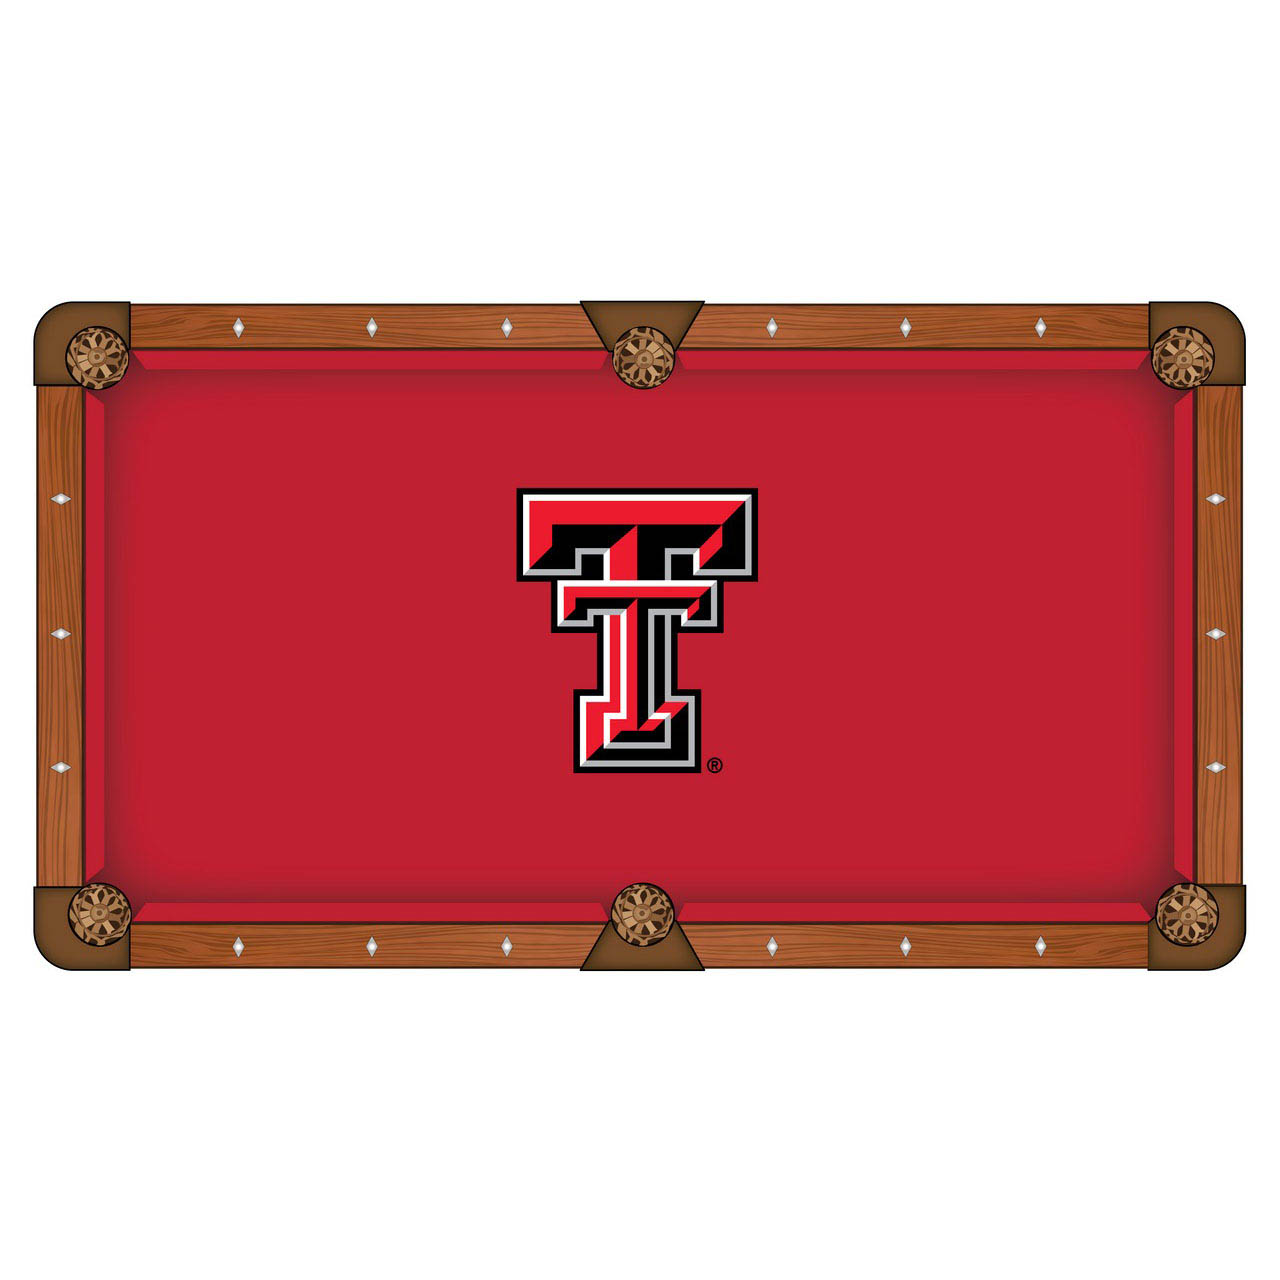 Stunning Texas-Tech-University-Pool-Table-Cloth Product Picture 578